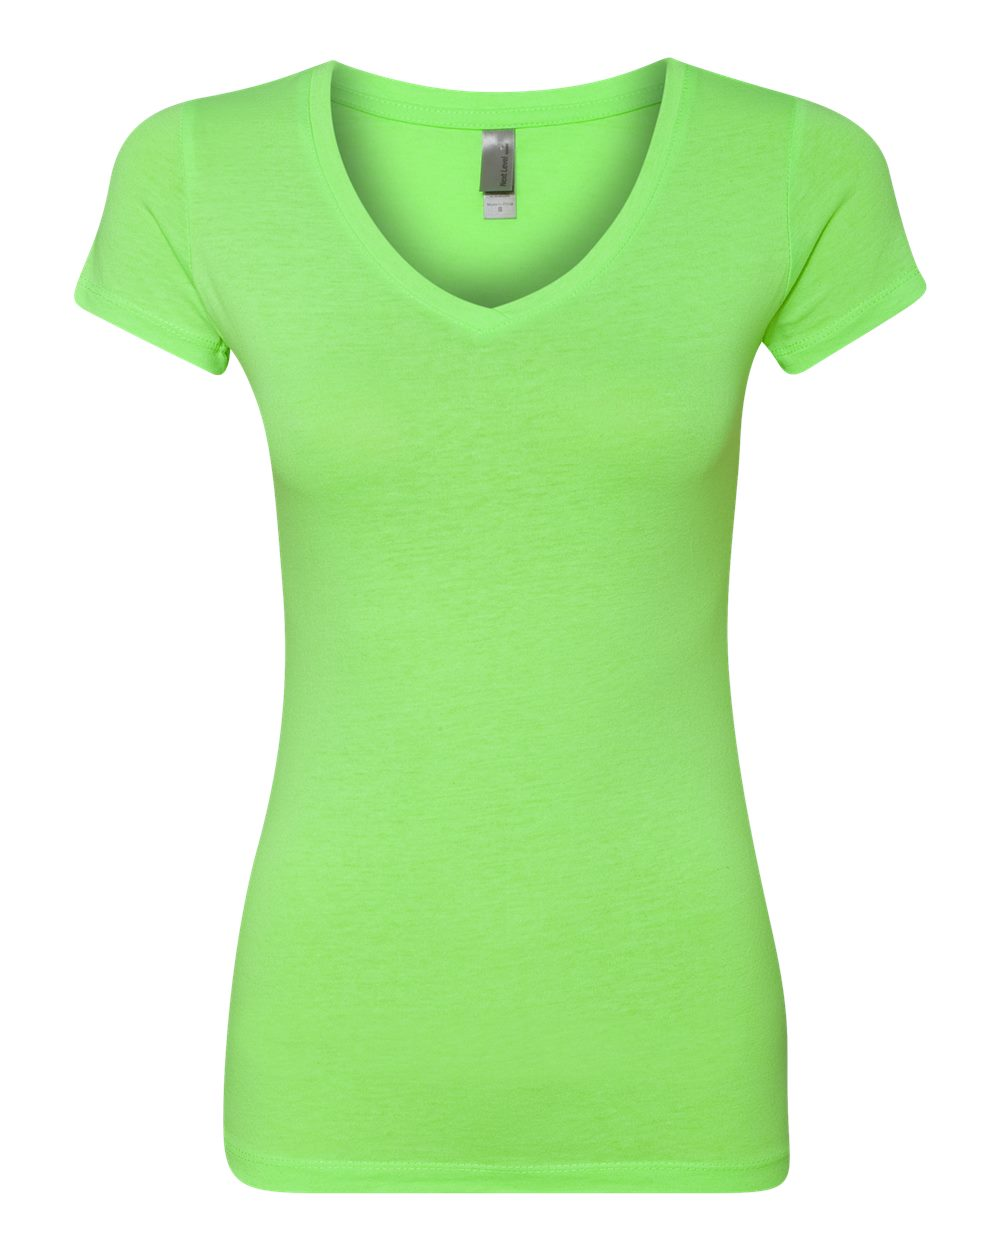 Next_Level_3400L_Neon_Heather_Green_Front_High.jpg